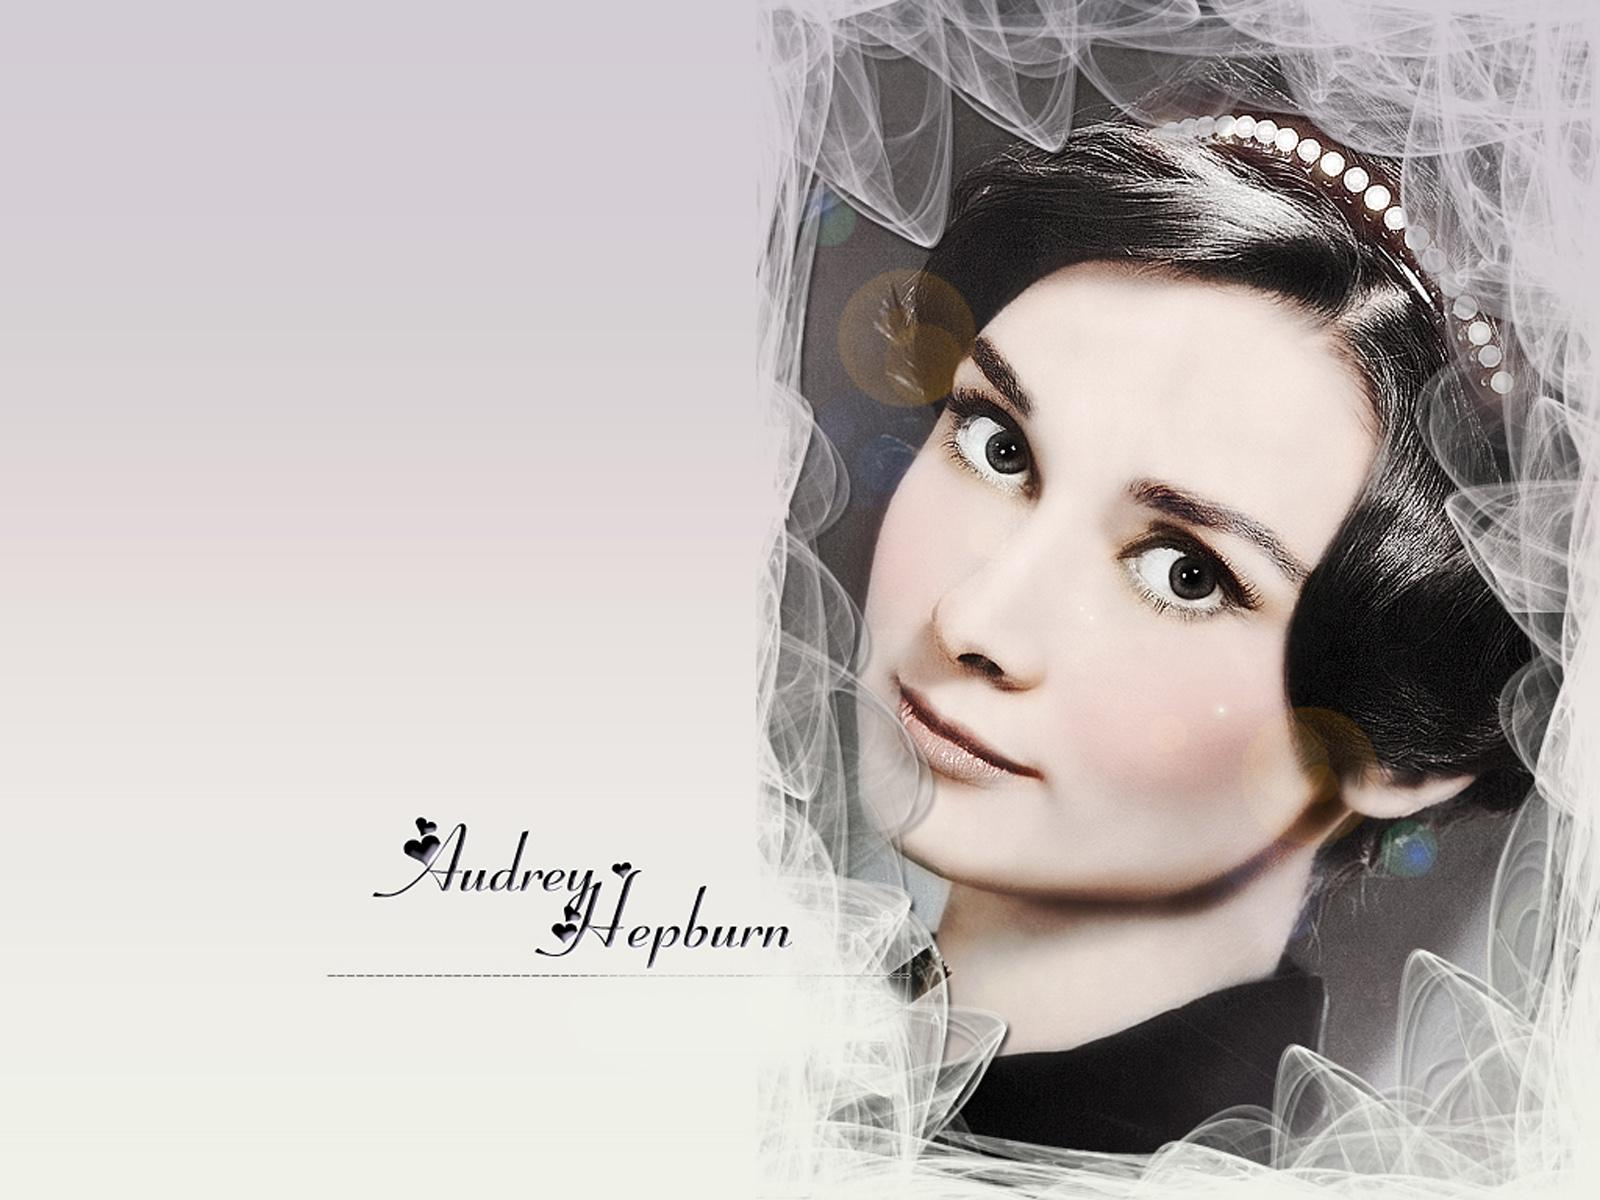 Free Download Wallpapers Photo Art Audrey Hepburn Wallpapers Audrey Hepburn 1600x1200 For Your Desktop Mobile Tablet Explore 77 Audrey Hepburn Wallpapers Audrey Hepburn Desktop Wallpaper Audrey Hepburn Wallpaper Hd